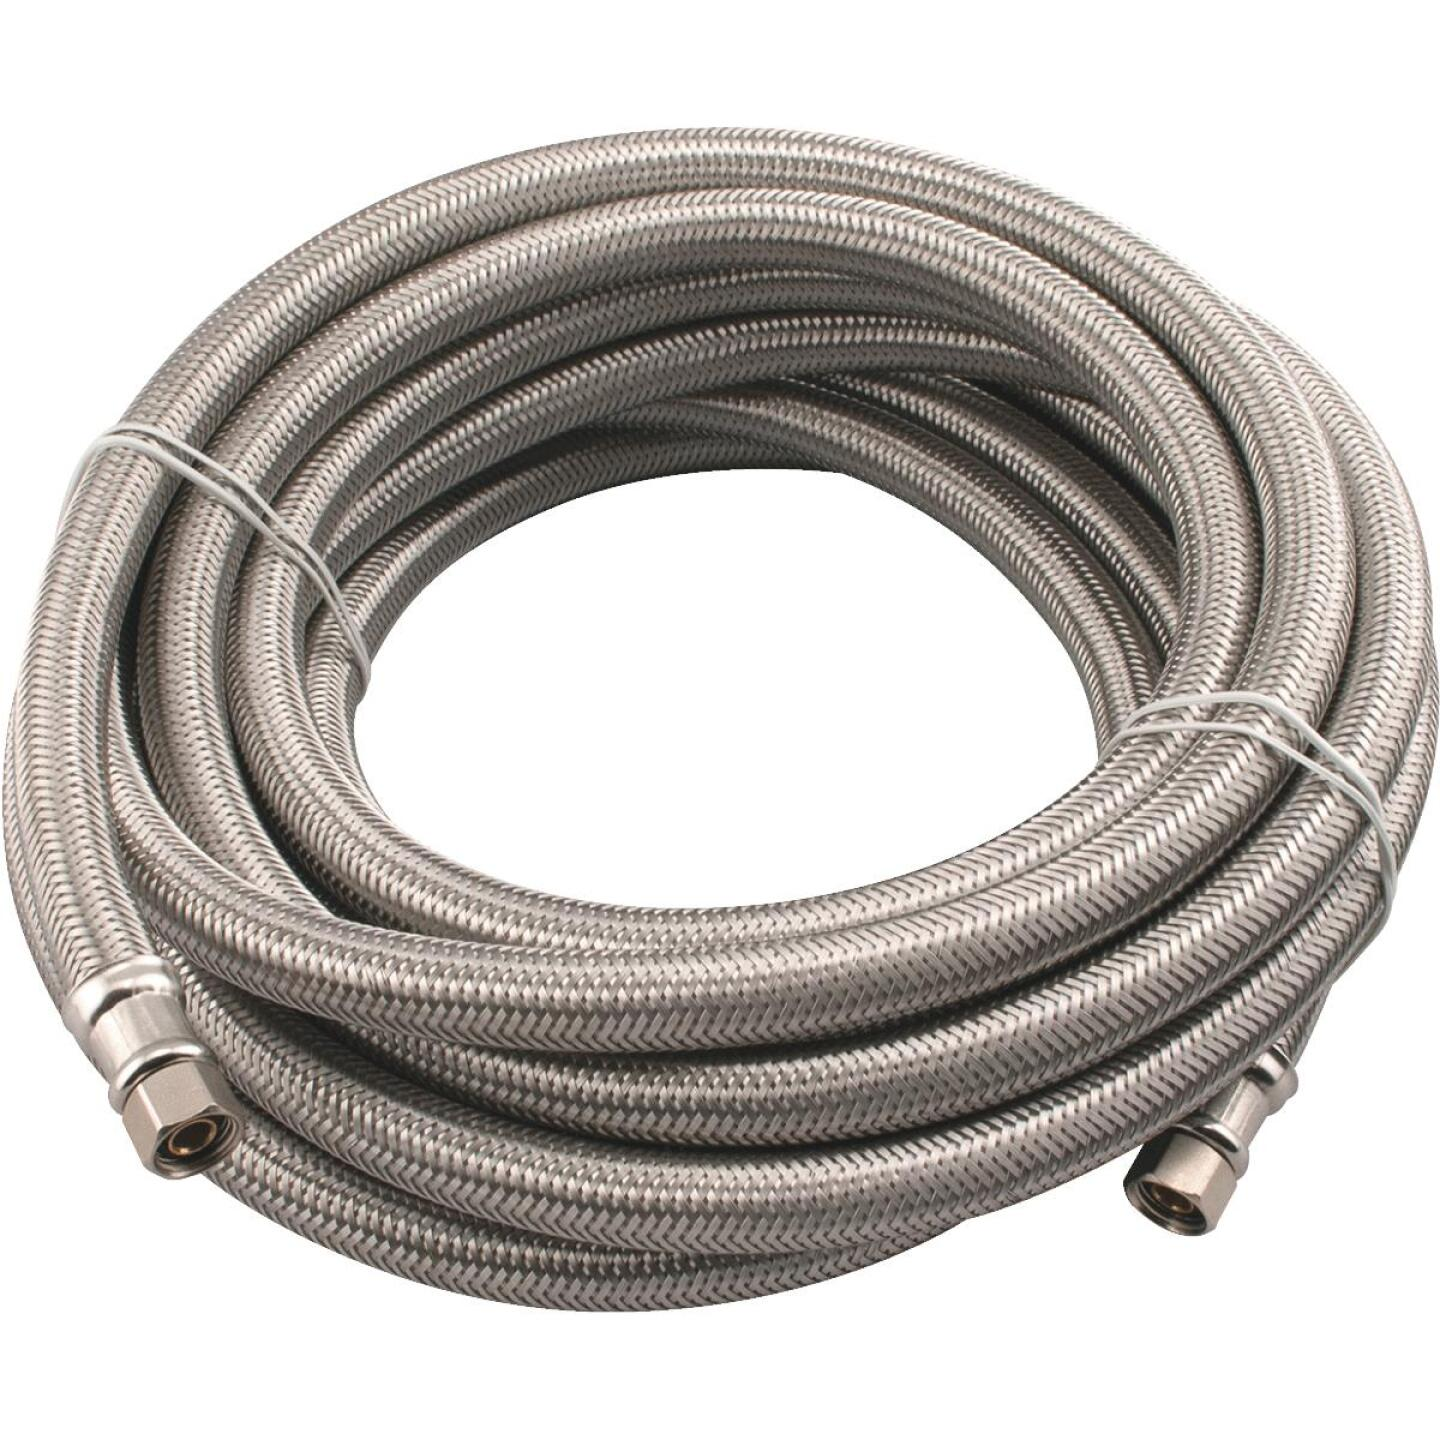 B&K 1/4 In. x 20 Ft. Ice Maker Connector Hose Image 1